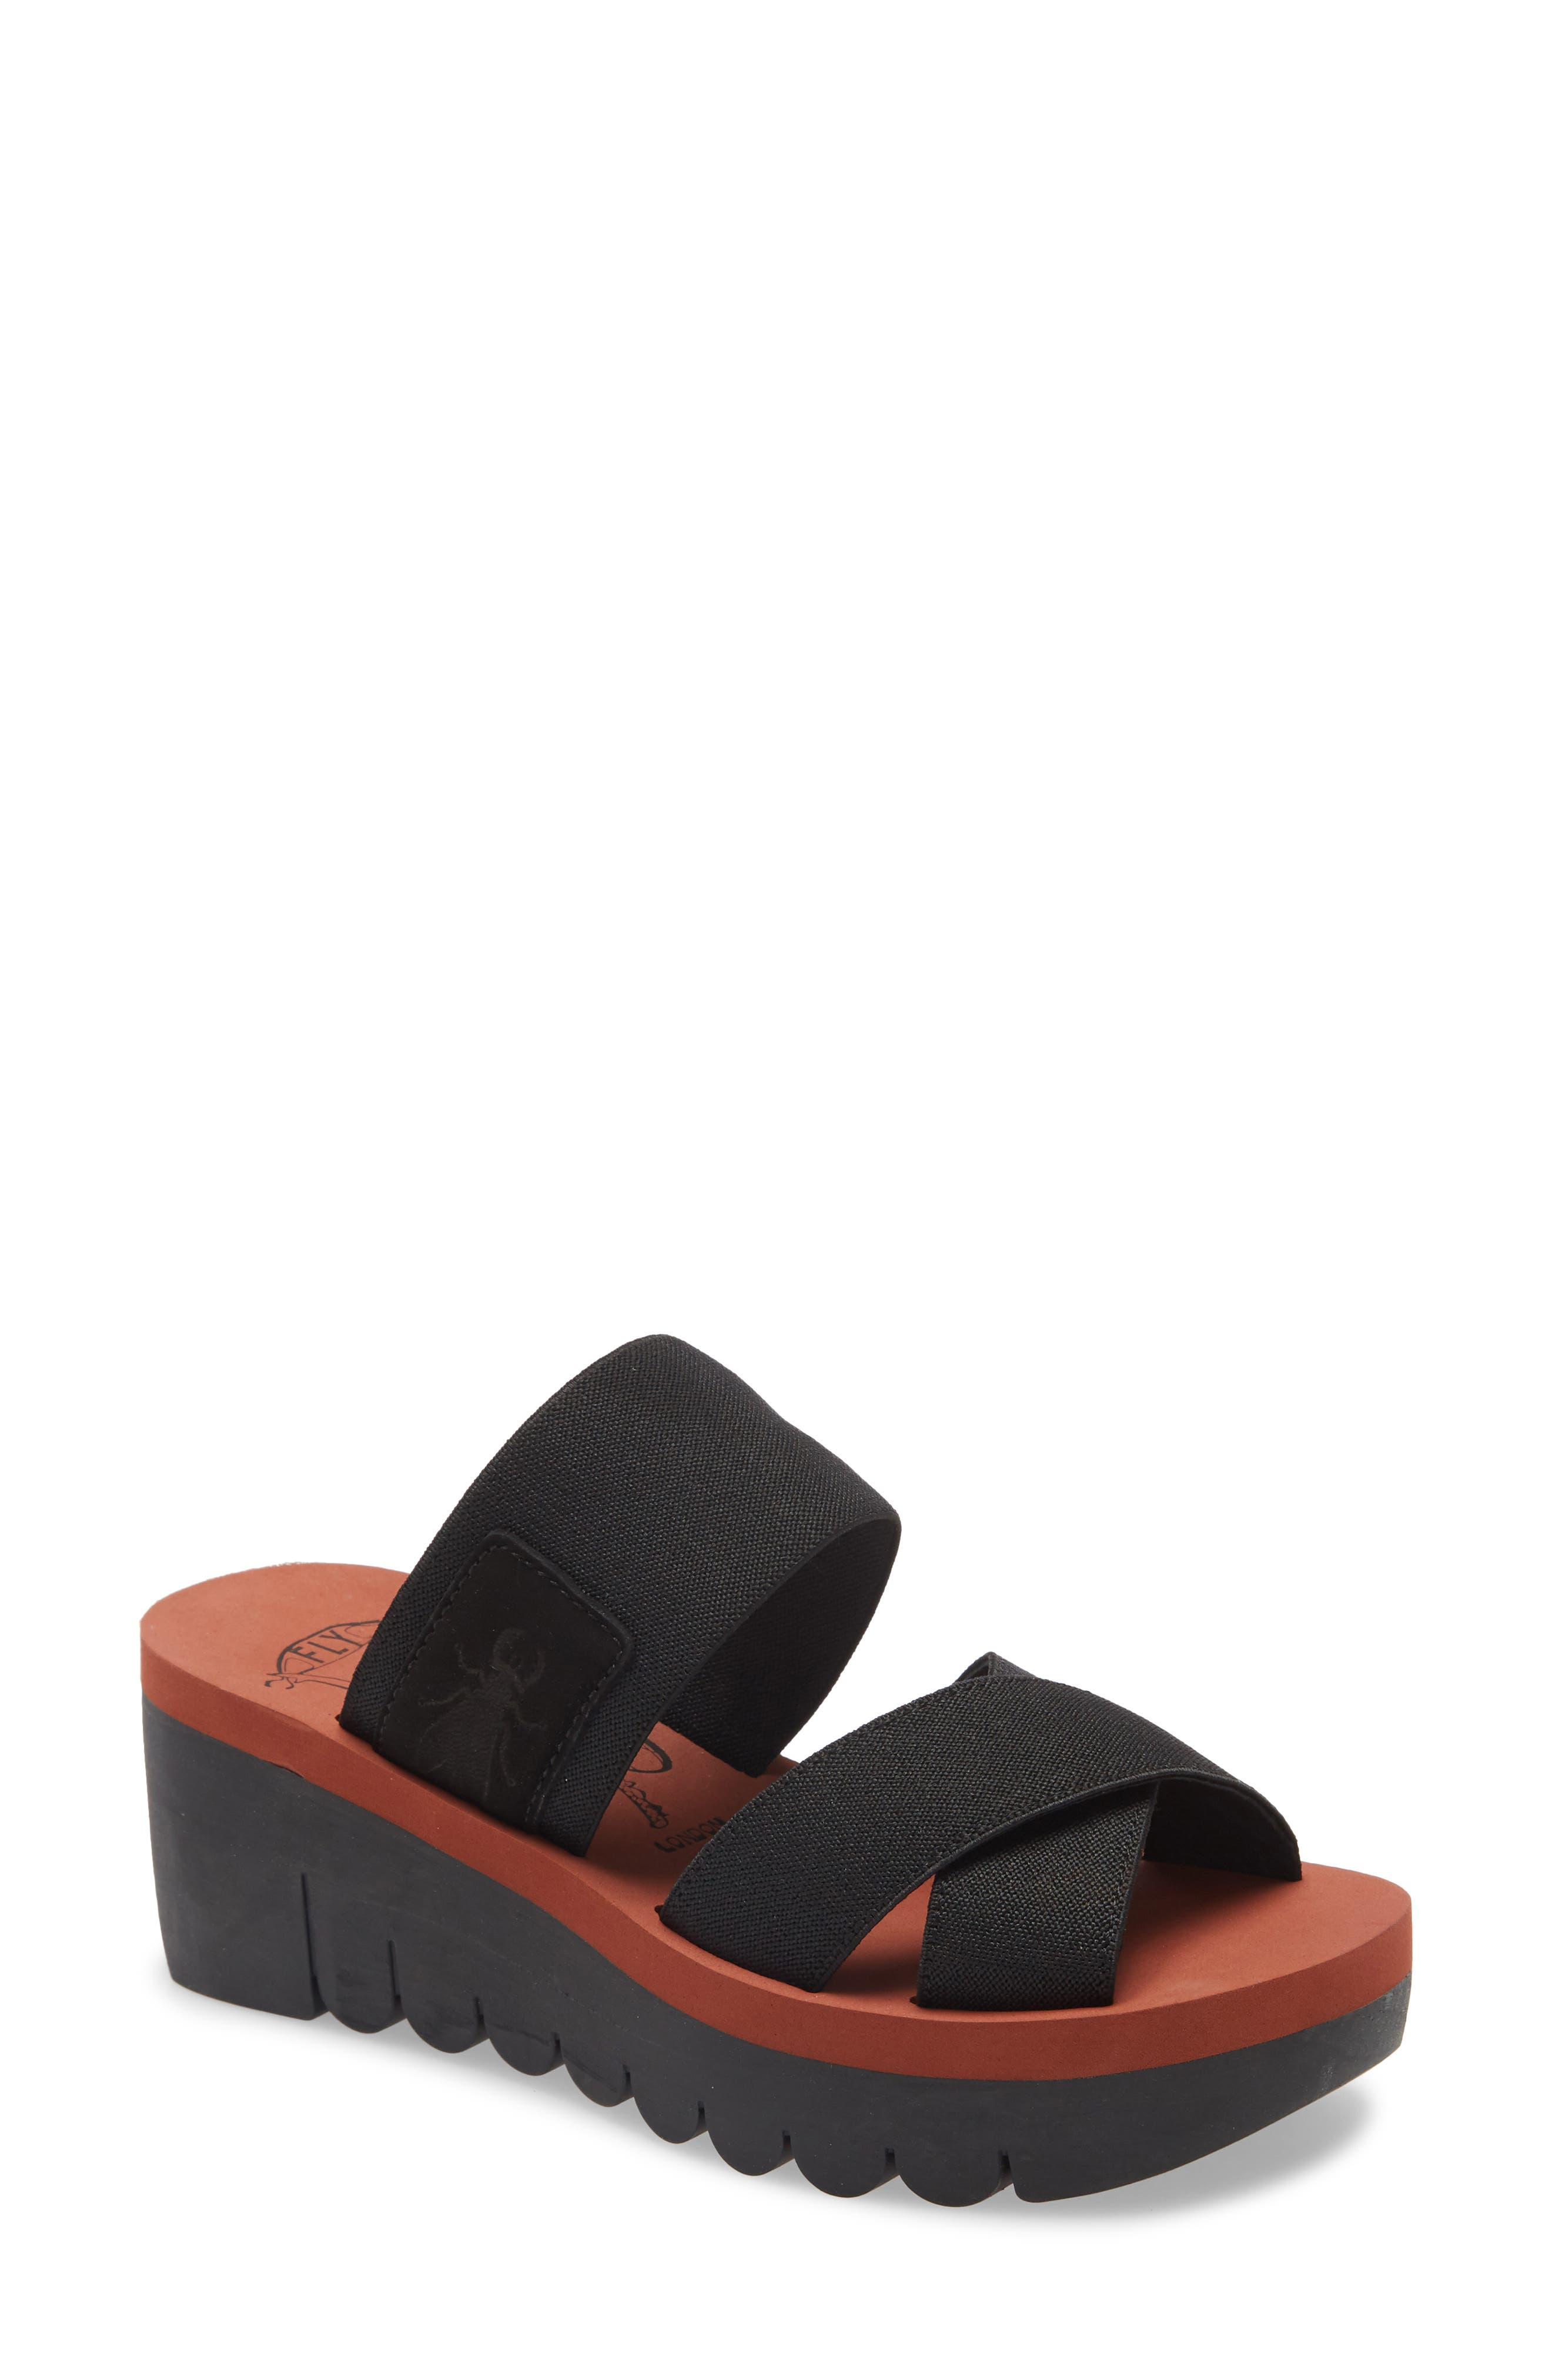 Wide canvas straps top a cushy, comfortable slide sandal lifted by a thick, sporty looking wedge and platform. Style Name: Fly London Yabo Platform Slide Sandal (Women). Style Number: 6002338 1. Available in stores.